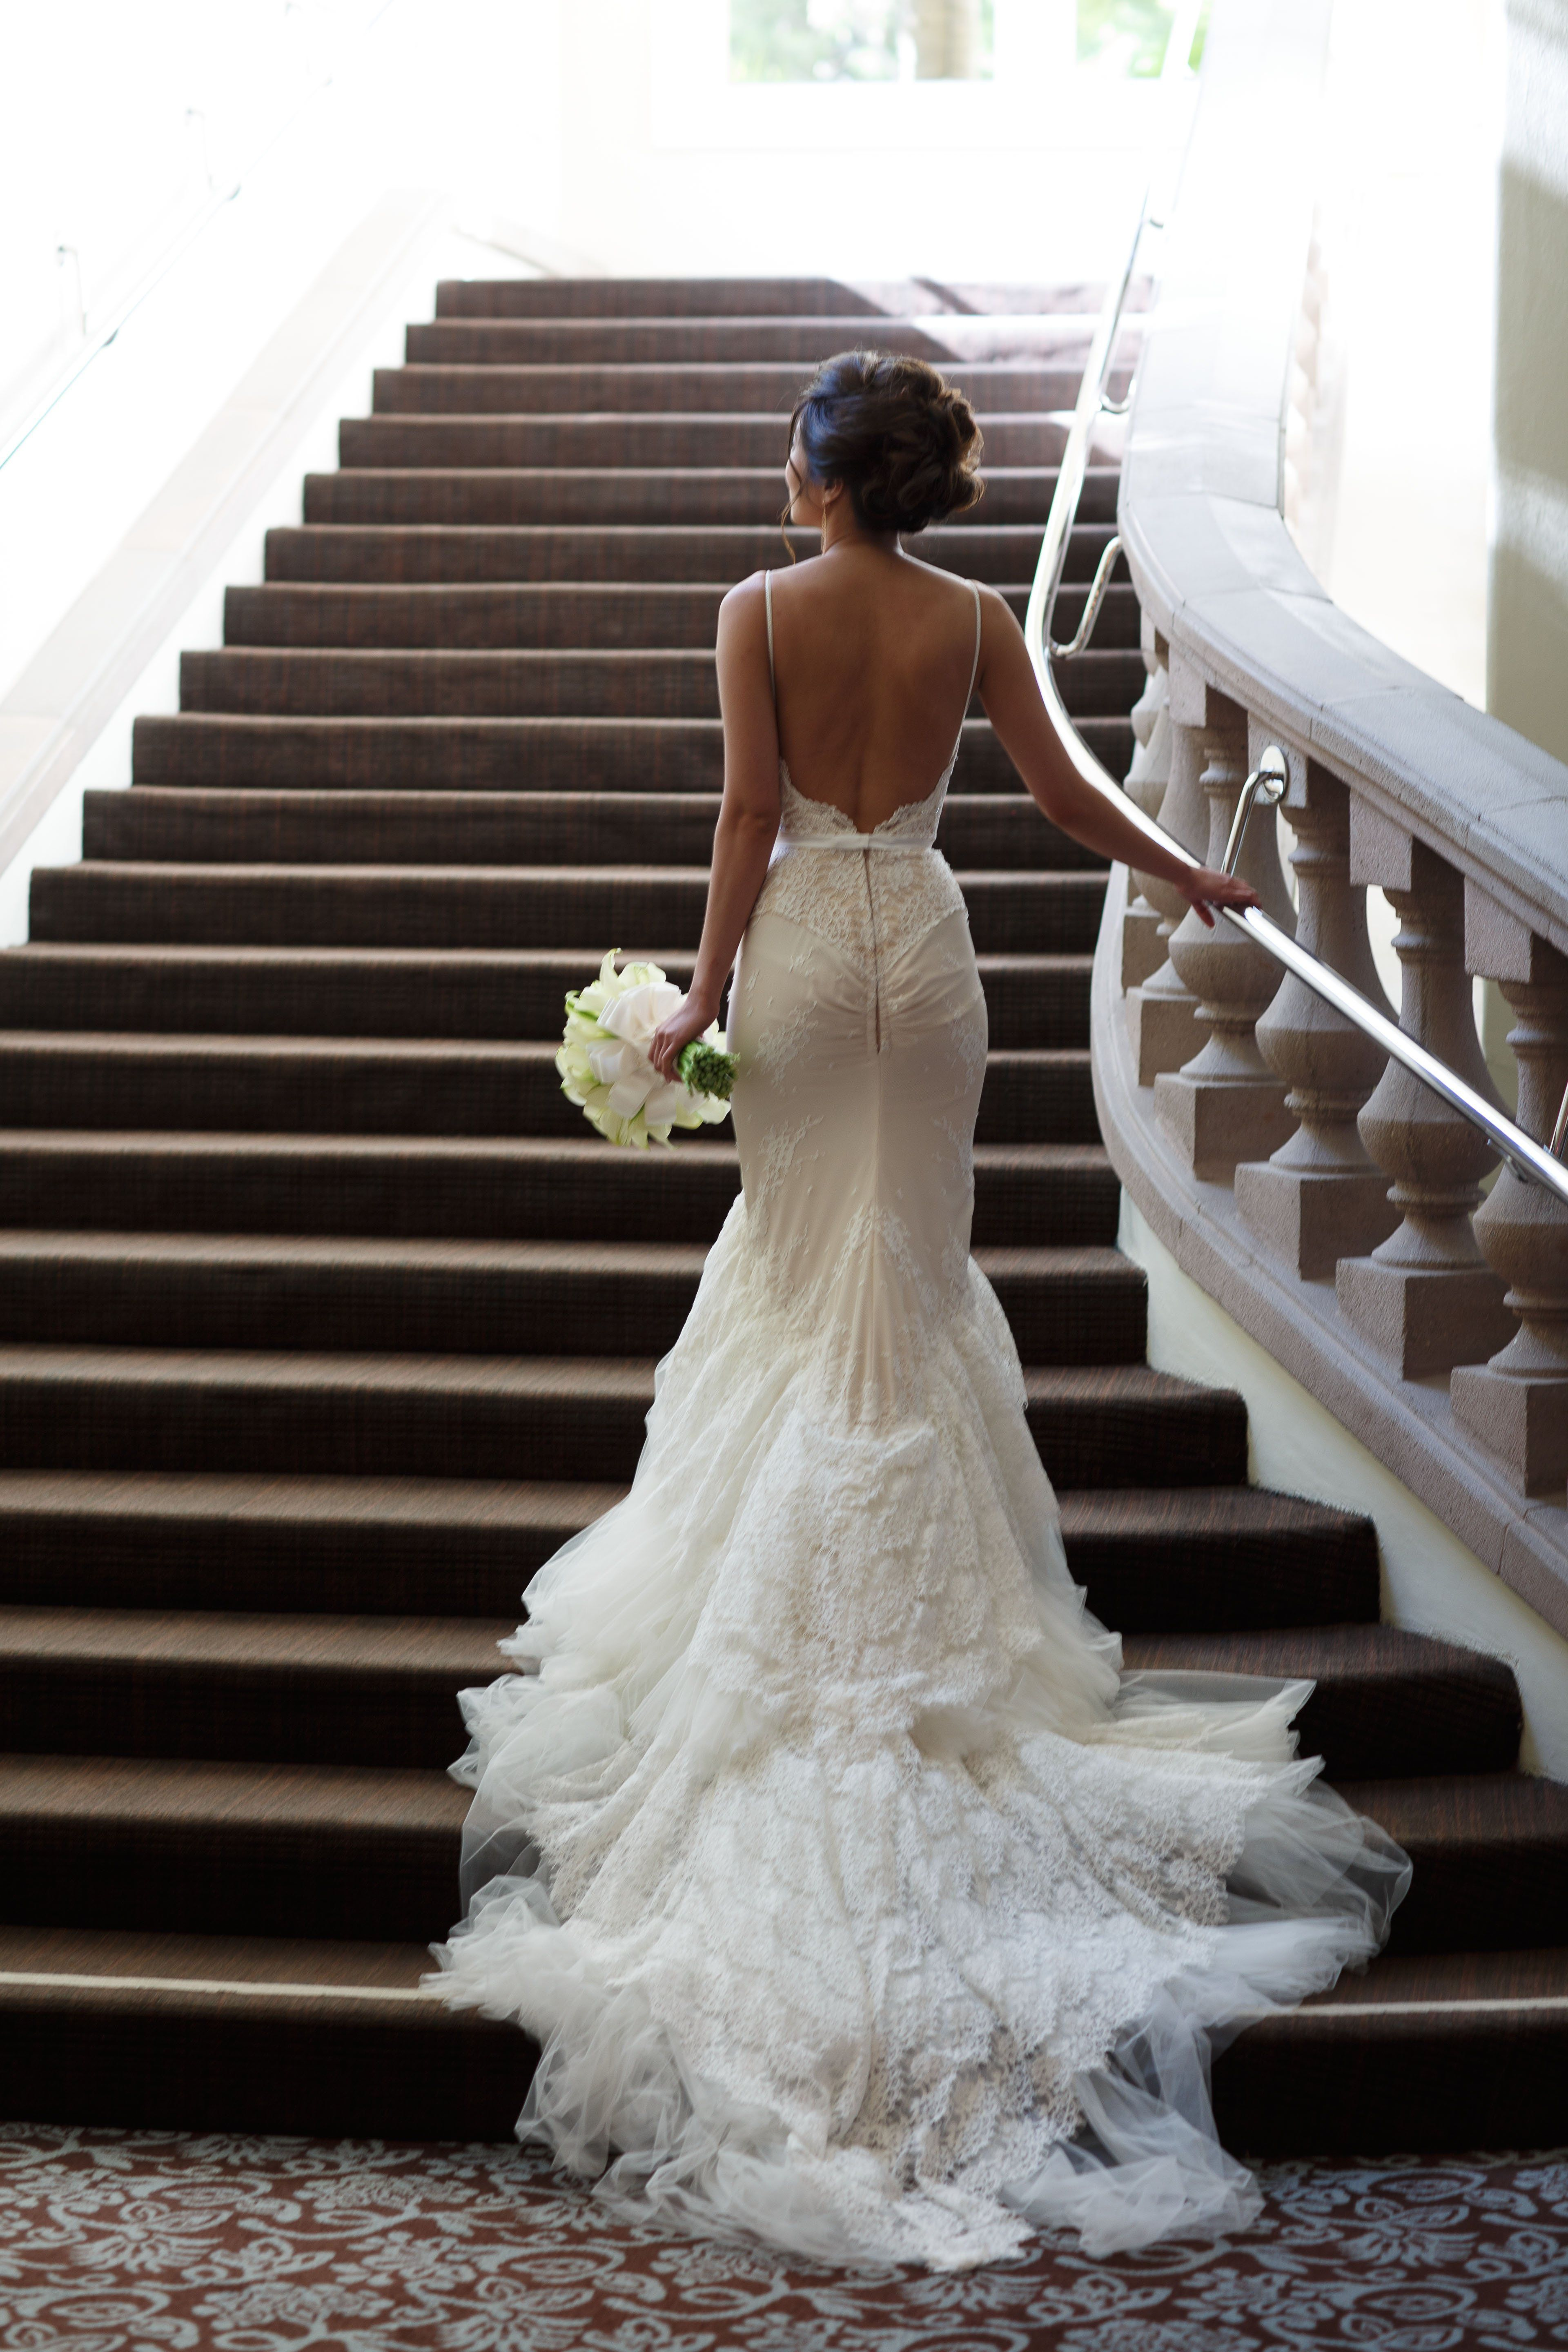 Choosing the best wedding salon in Moscow